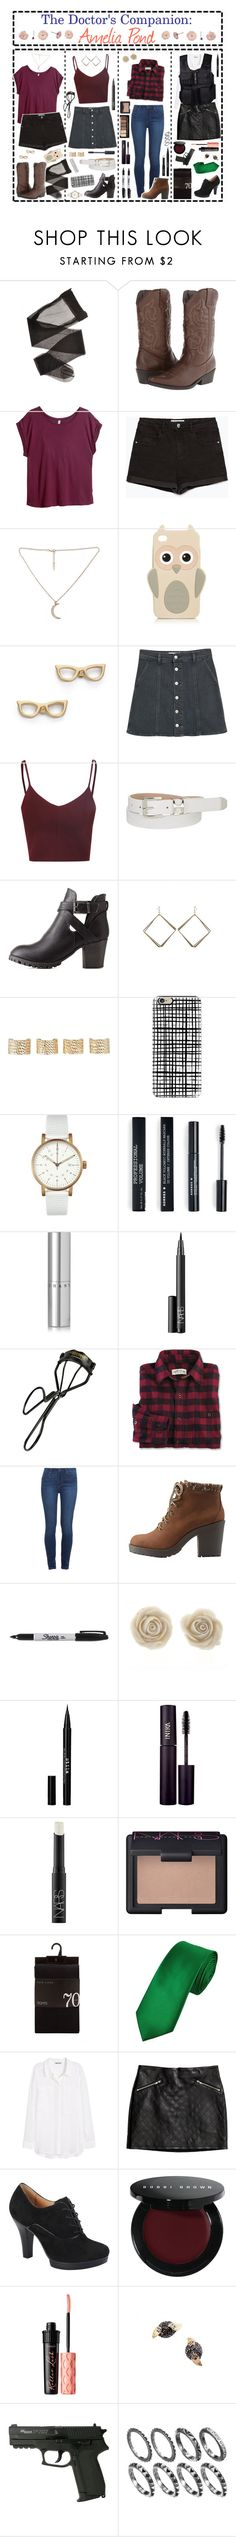 """""""- ̗̀ the Doctor's Companion: Amelia Pond  ̖́-"""" by i-get-a-little-bit-breathless ❤ liked on Polyvore featuring Madden Girl, H&M, Zara, Kate Spade, MANGO, Glamorous, maurices, Charlotte Russe, Maison Margiela and Casetify"""